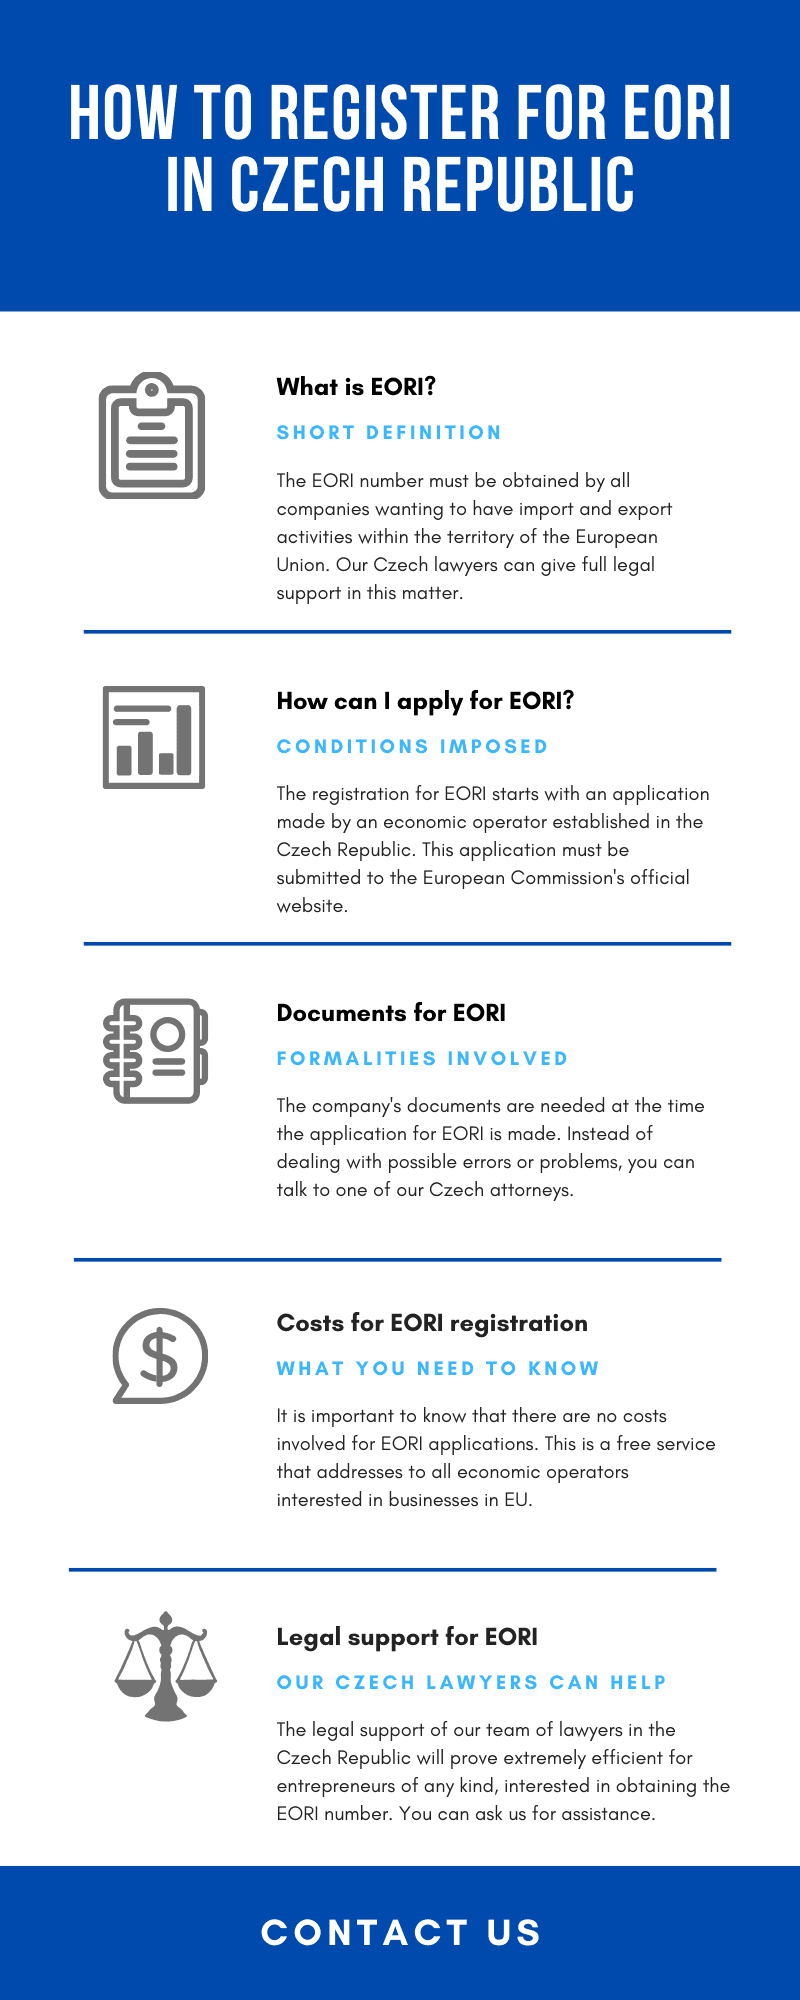 How to register for EORI in Czech Republic1.png